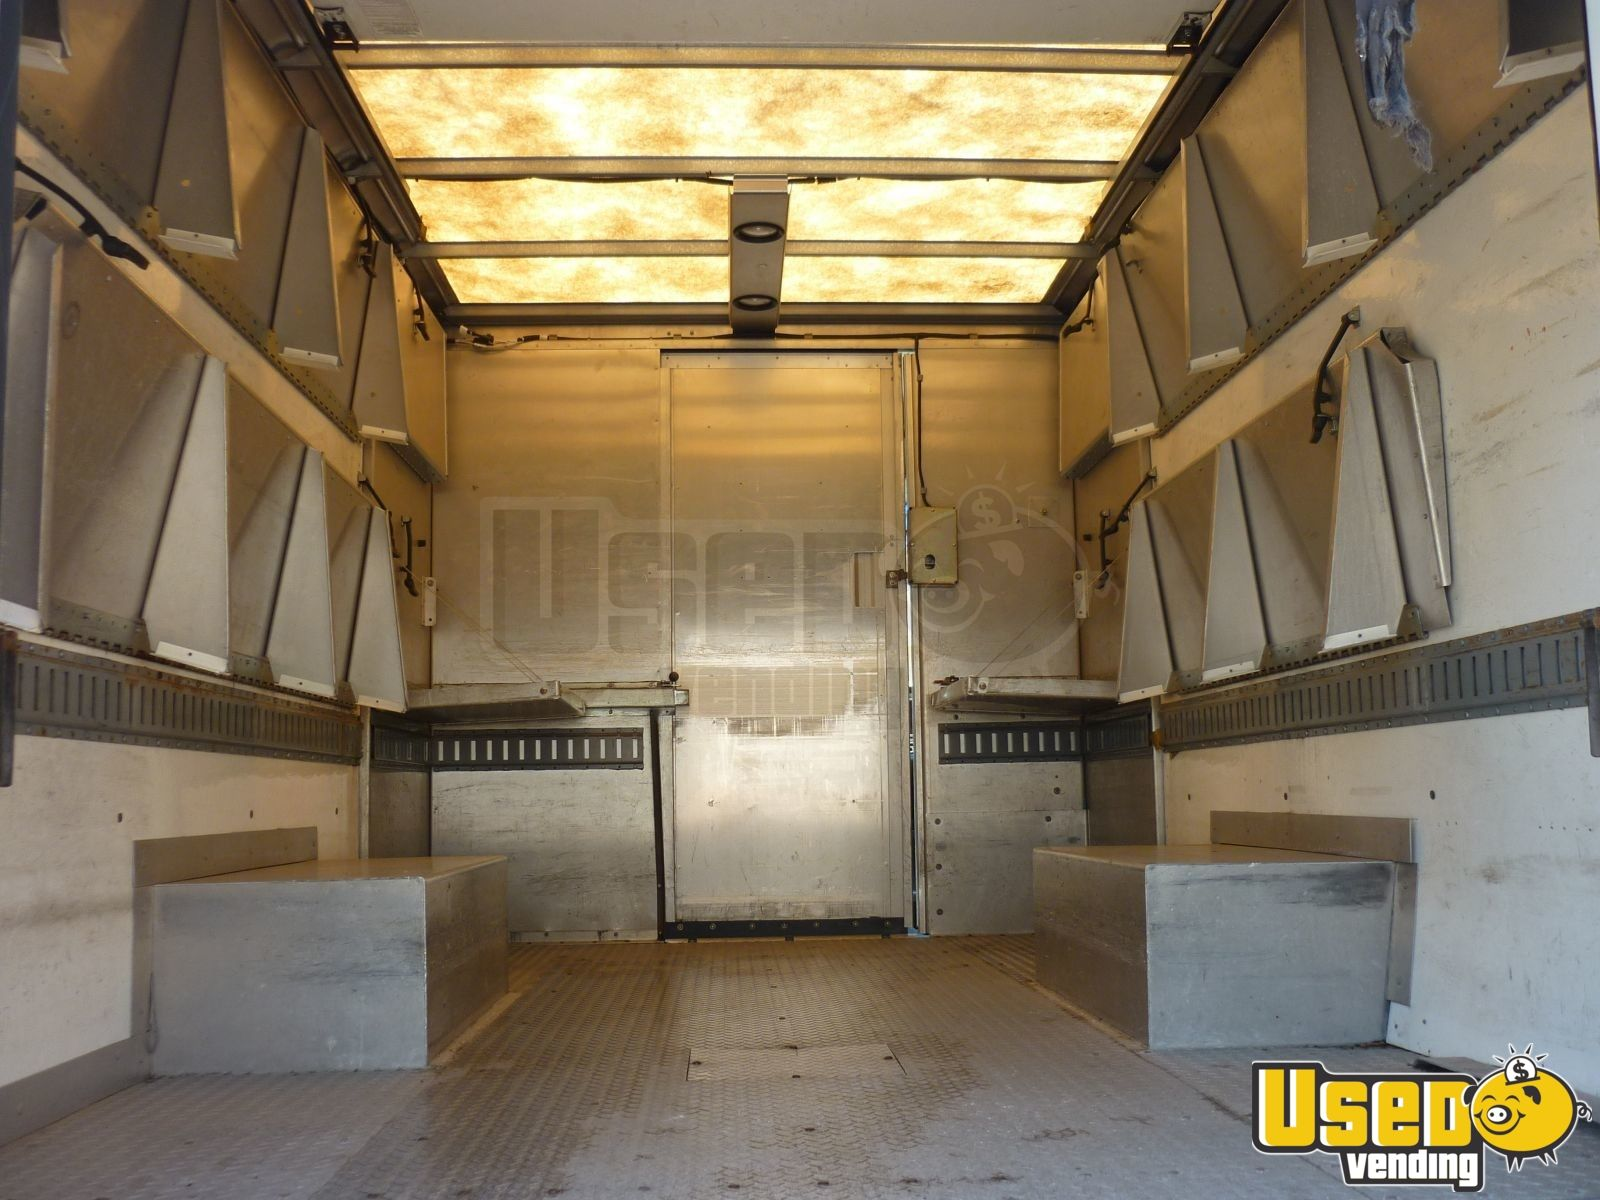 2003 Gruman P42 Workhorse Stepvan 13 Georgia Diesel Engine for Sale - 13